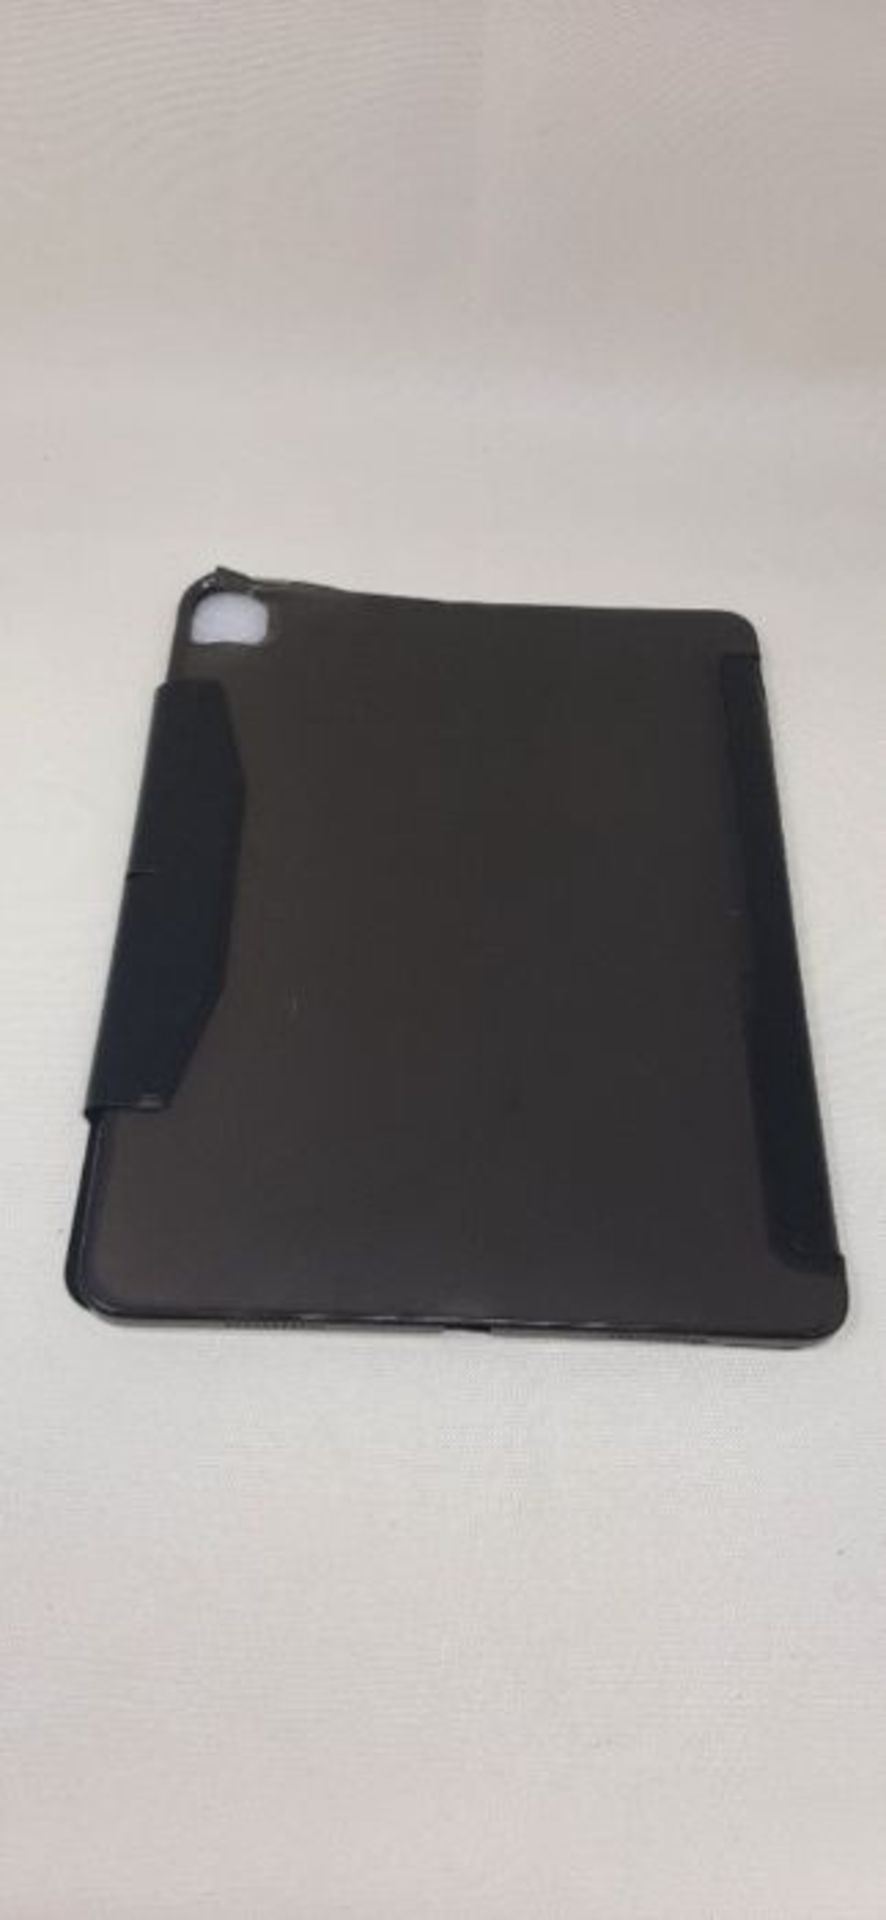 ESR Case Compatible with iPad Pro 12.9 Inch 2021 (5th Generation, 5G), Translucent Sta - Image 3 of 3